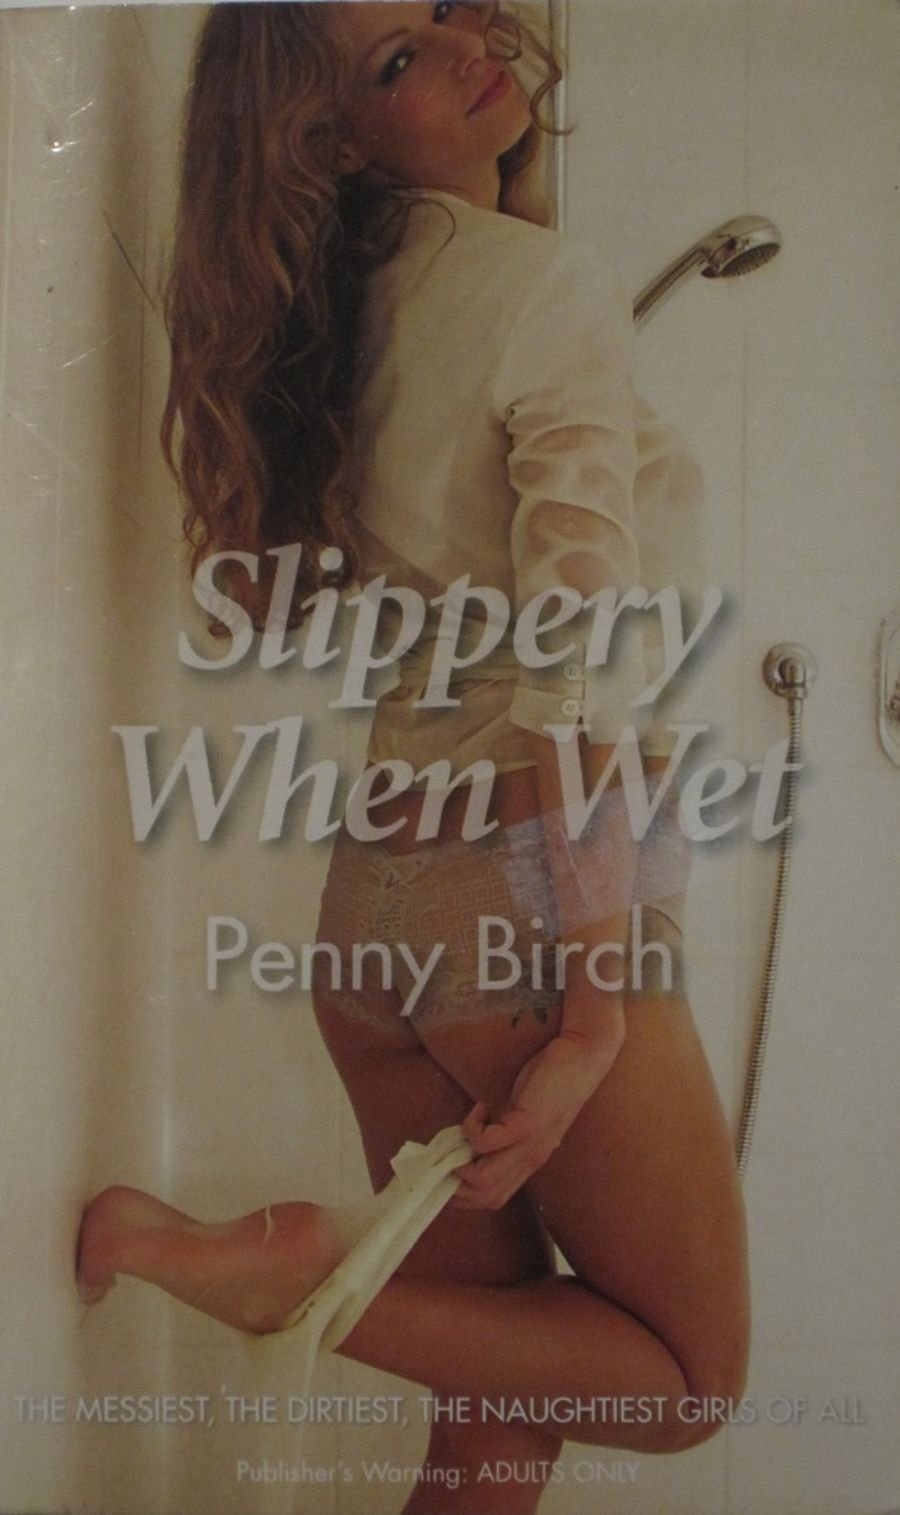 SLIPPERY WHEN WET.  2007 EROTIC FICTION PAPERBACK BOOK.